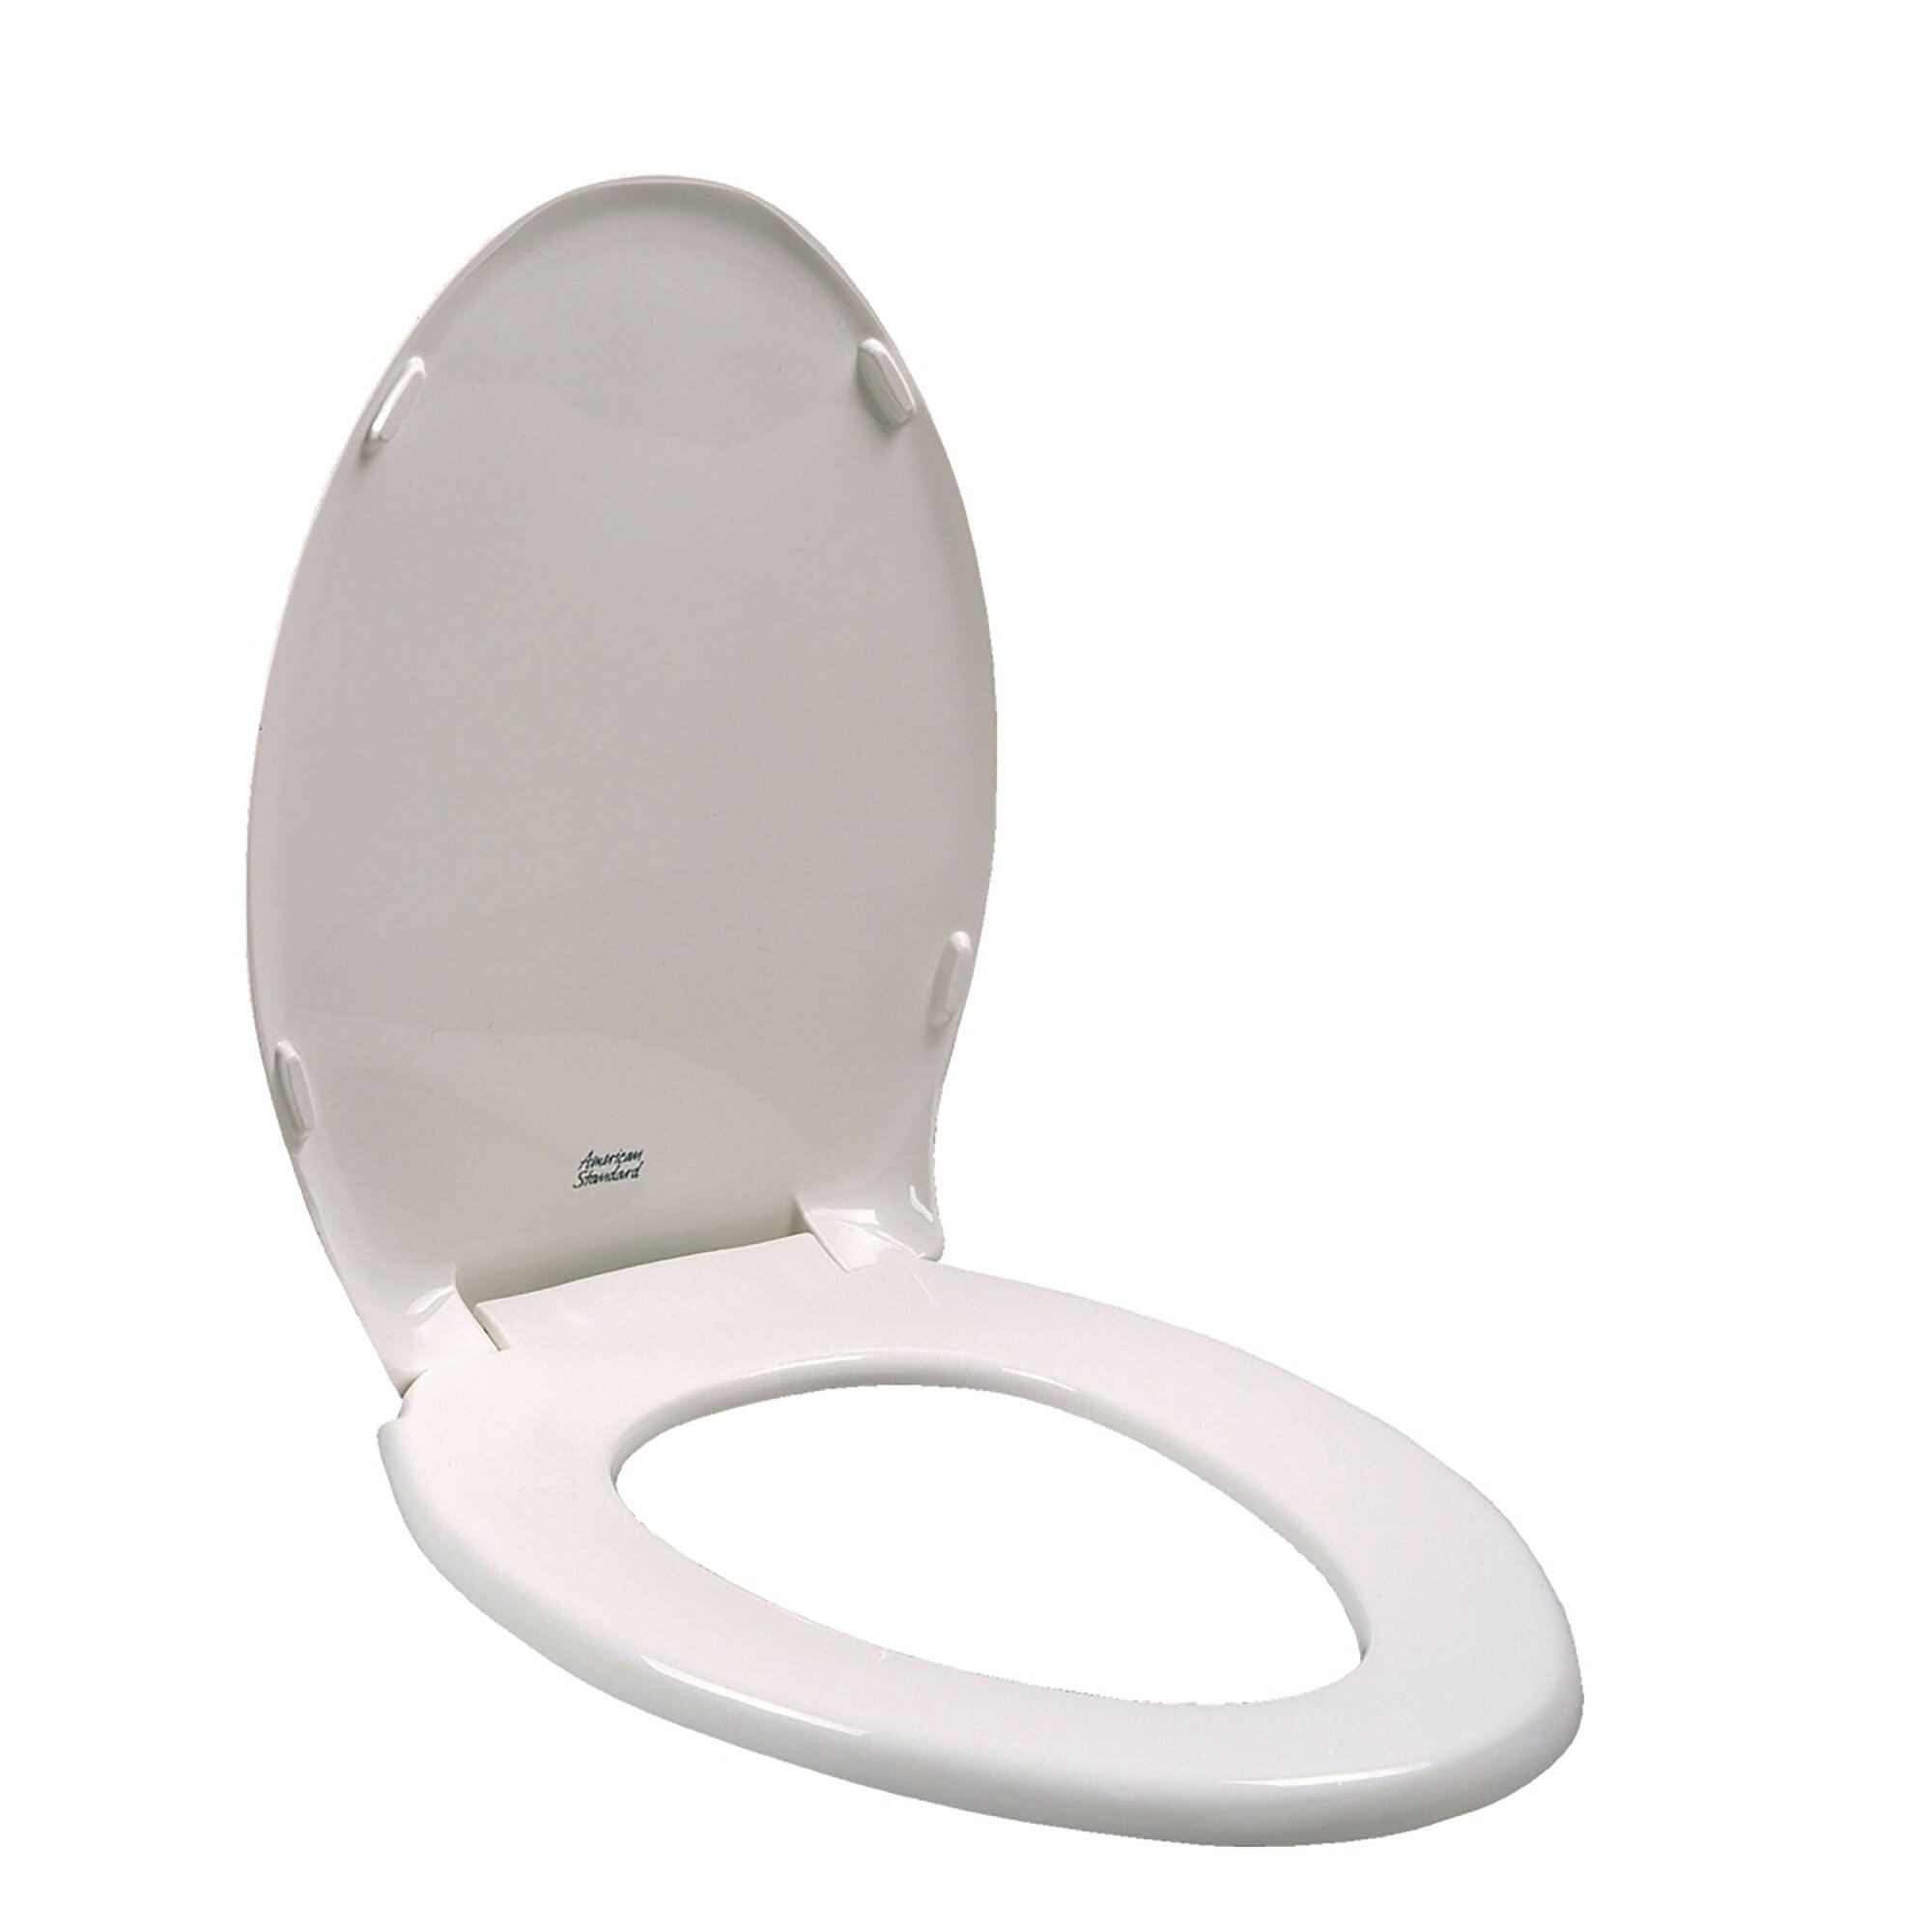 American standard champion 4 toilet reviews - American Standard Champion Slow Close Front Round Toilet Seat